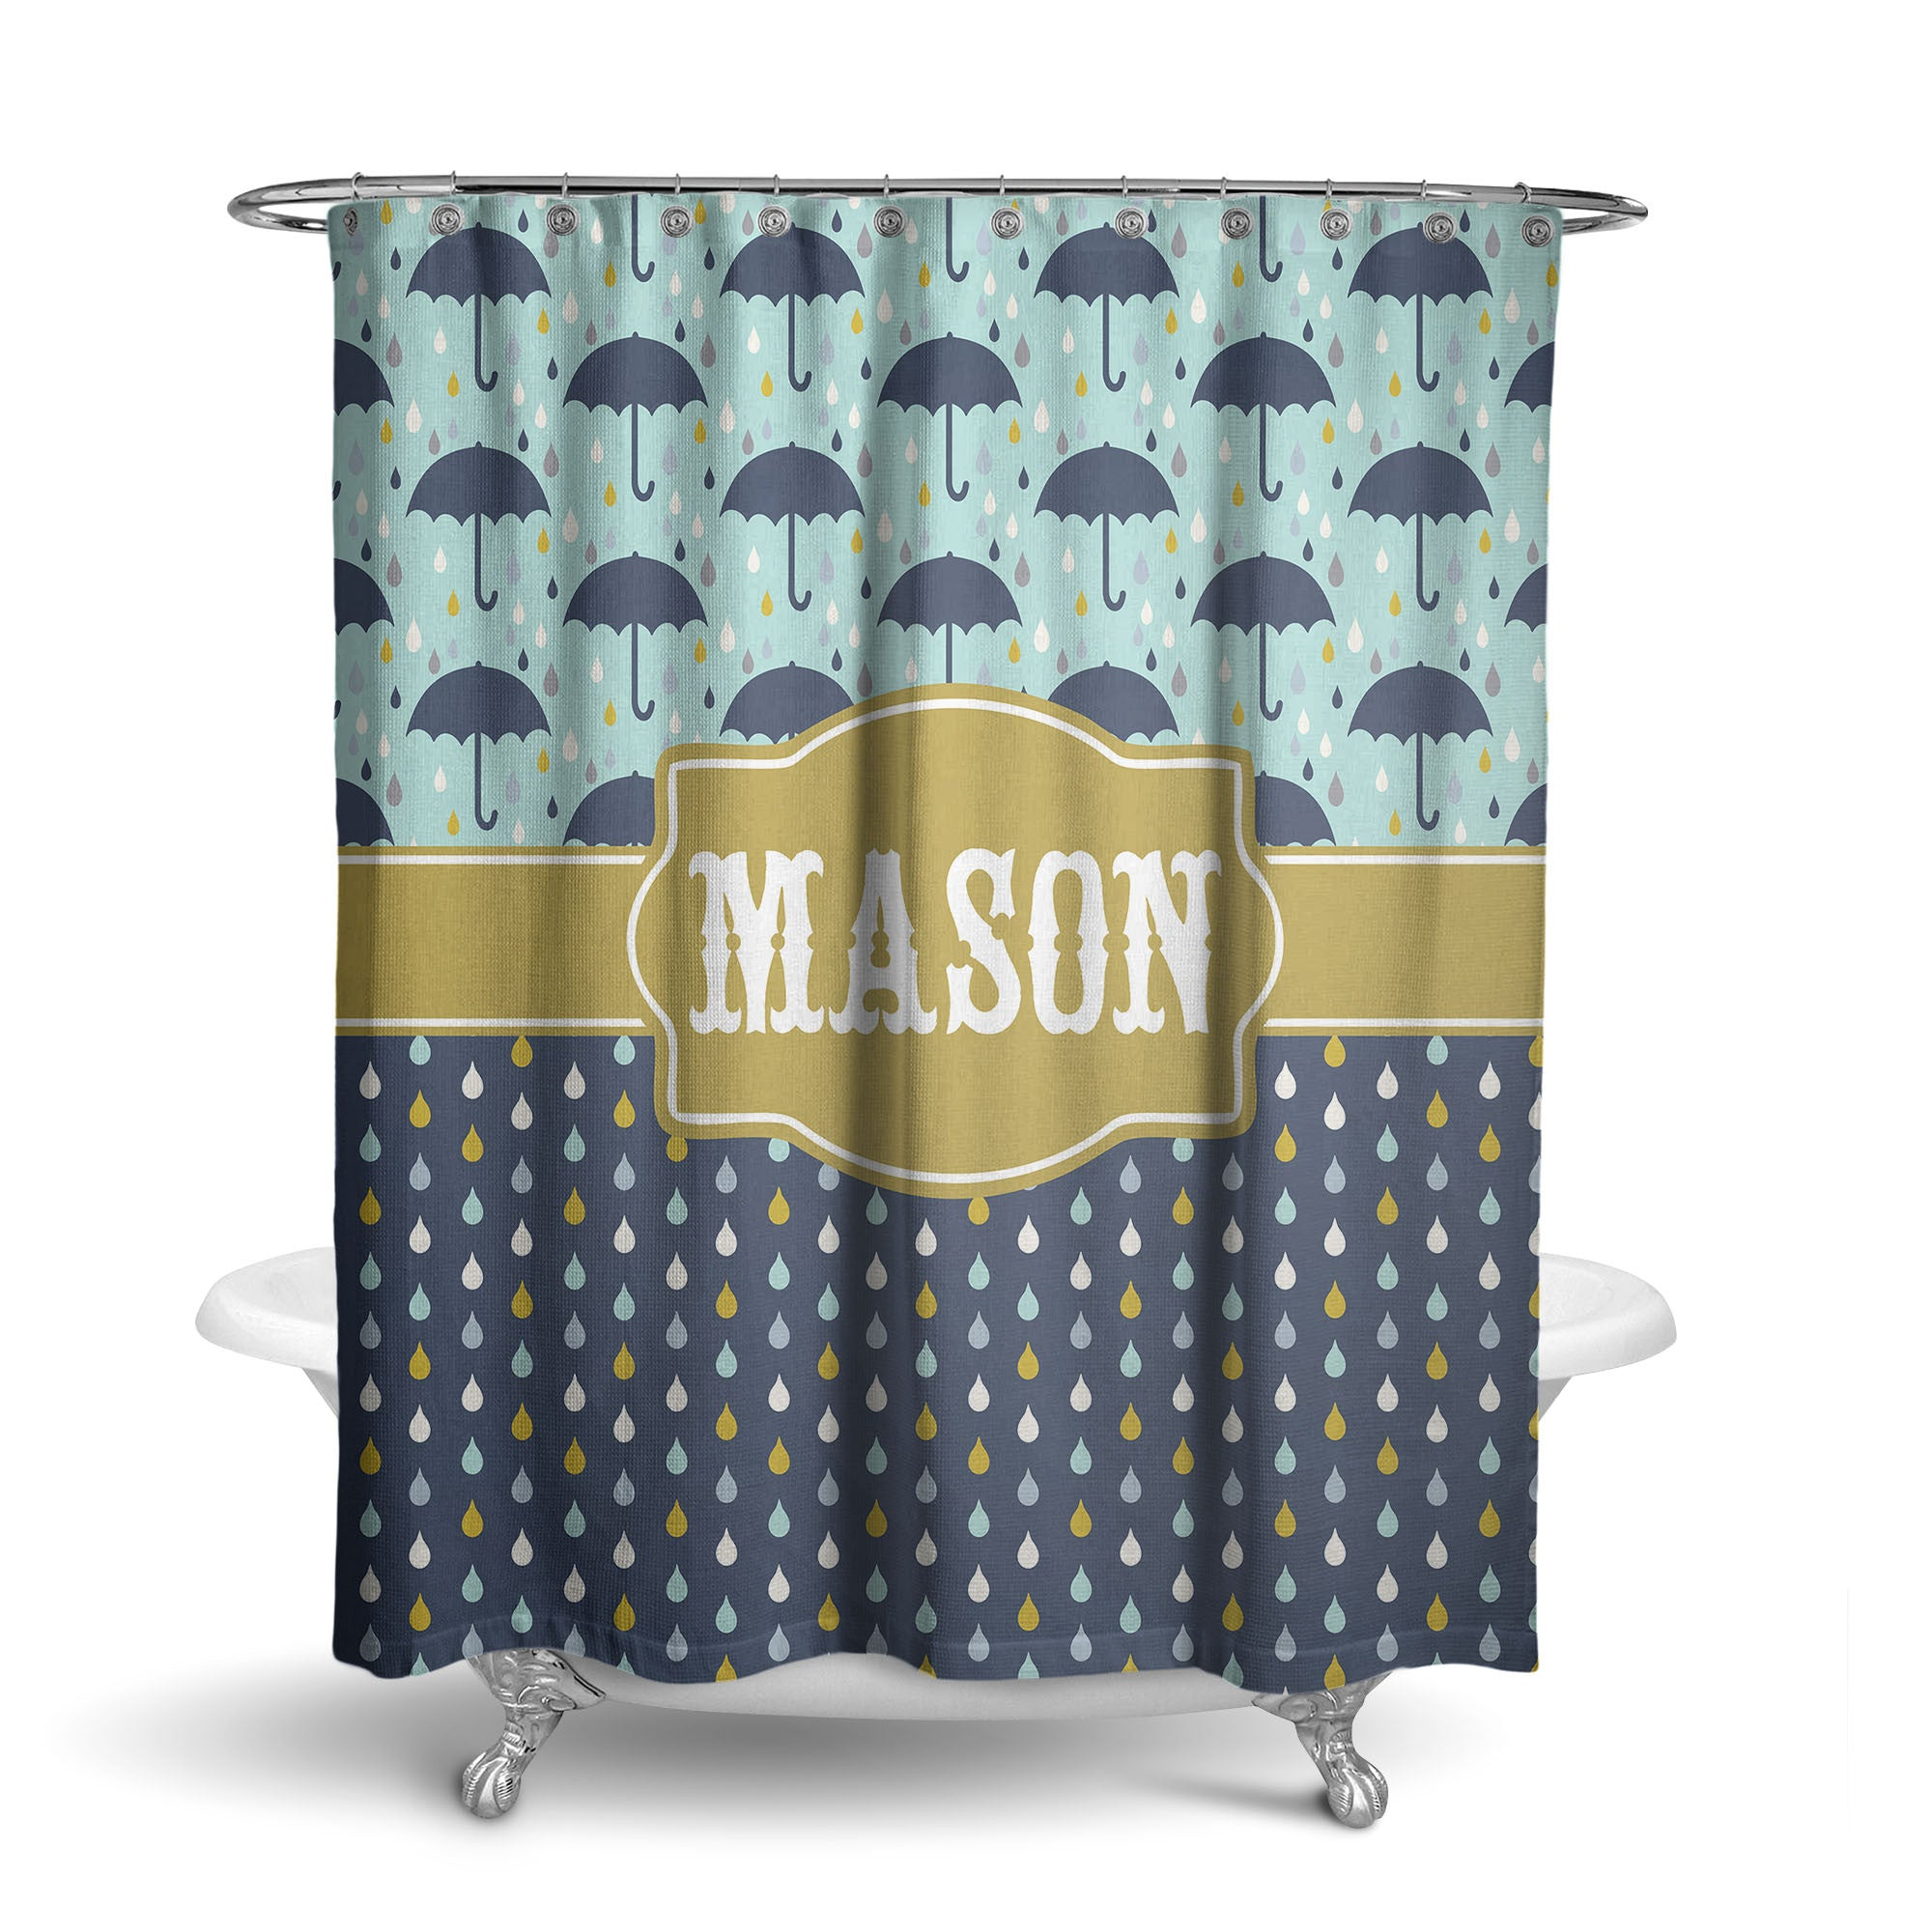 Stormy Umbrella Monogram Shower Curtain (SC1044)